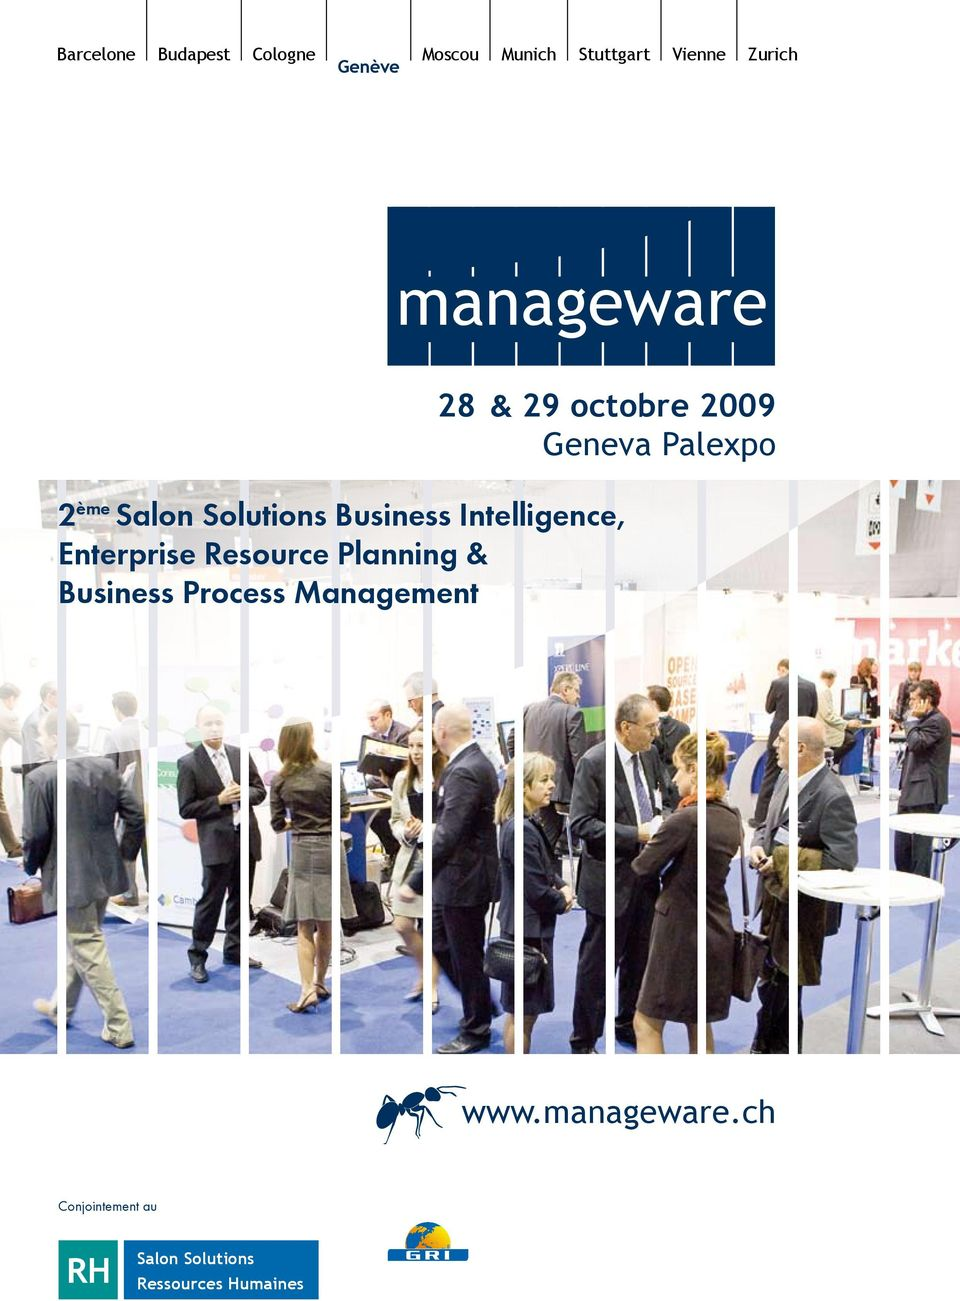 Resource Planning & Business Process Management www.manageware.